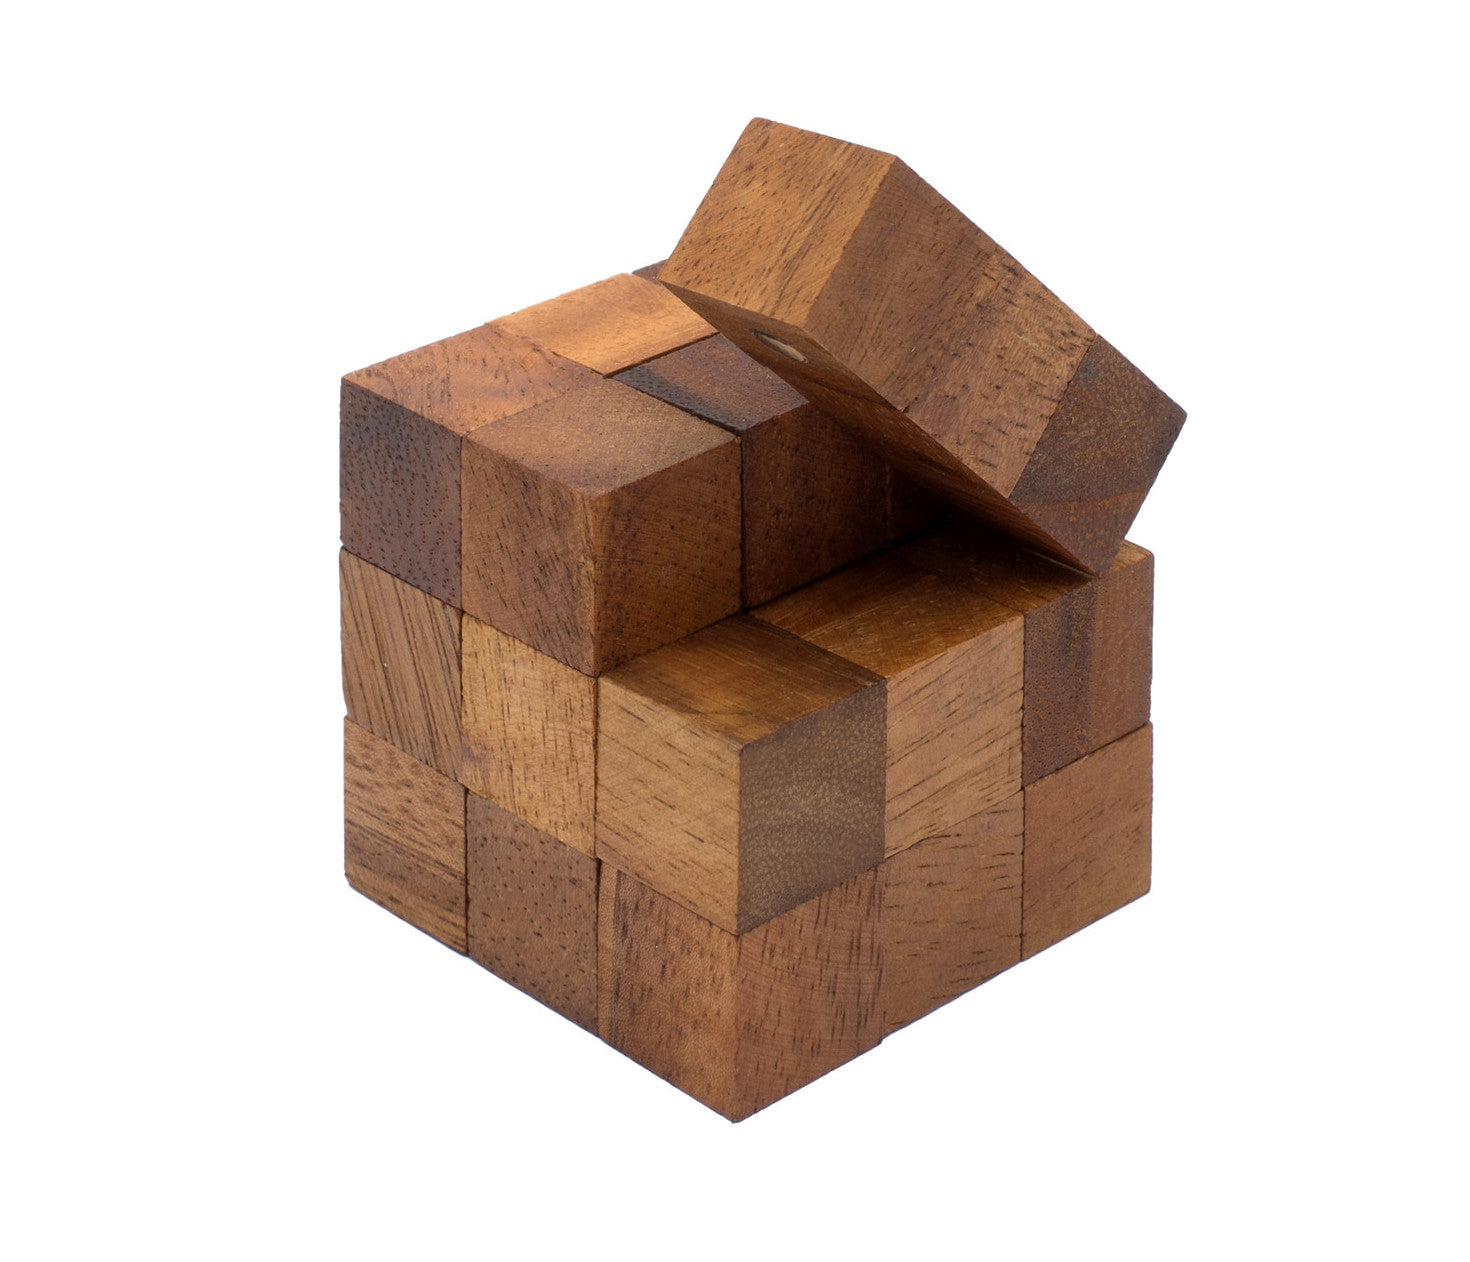 Wood Block Puzzle ~ Snake cube puzzle or serpent wooden toy